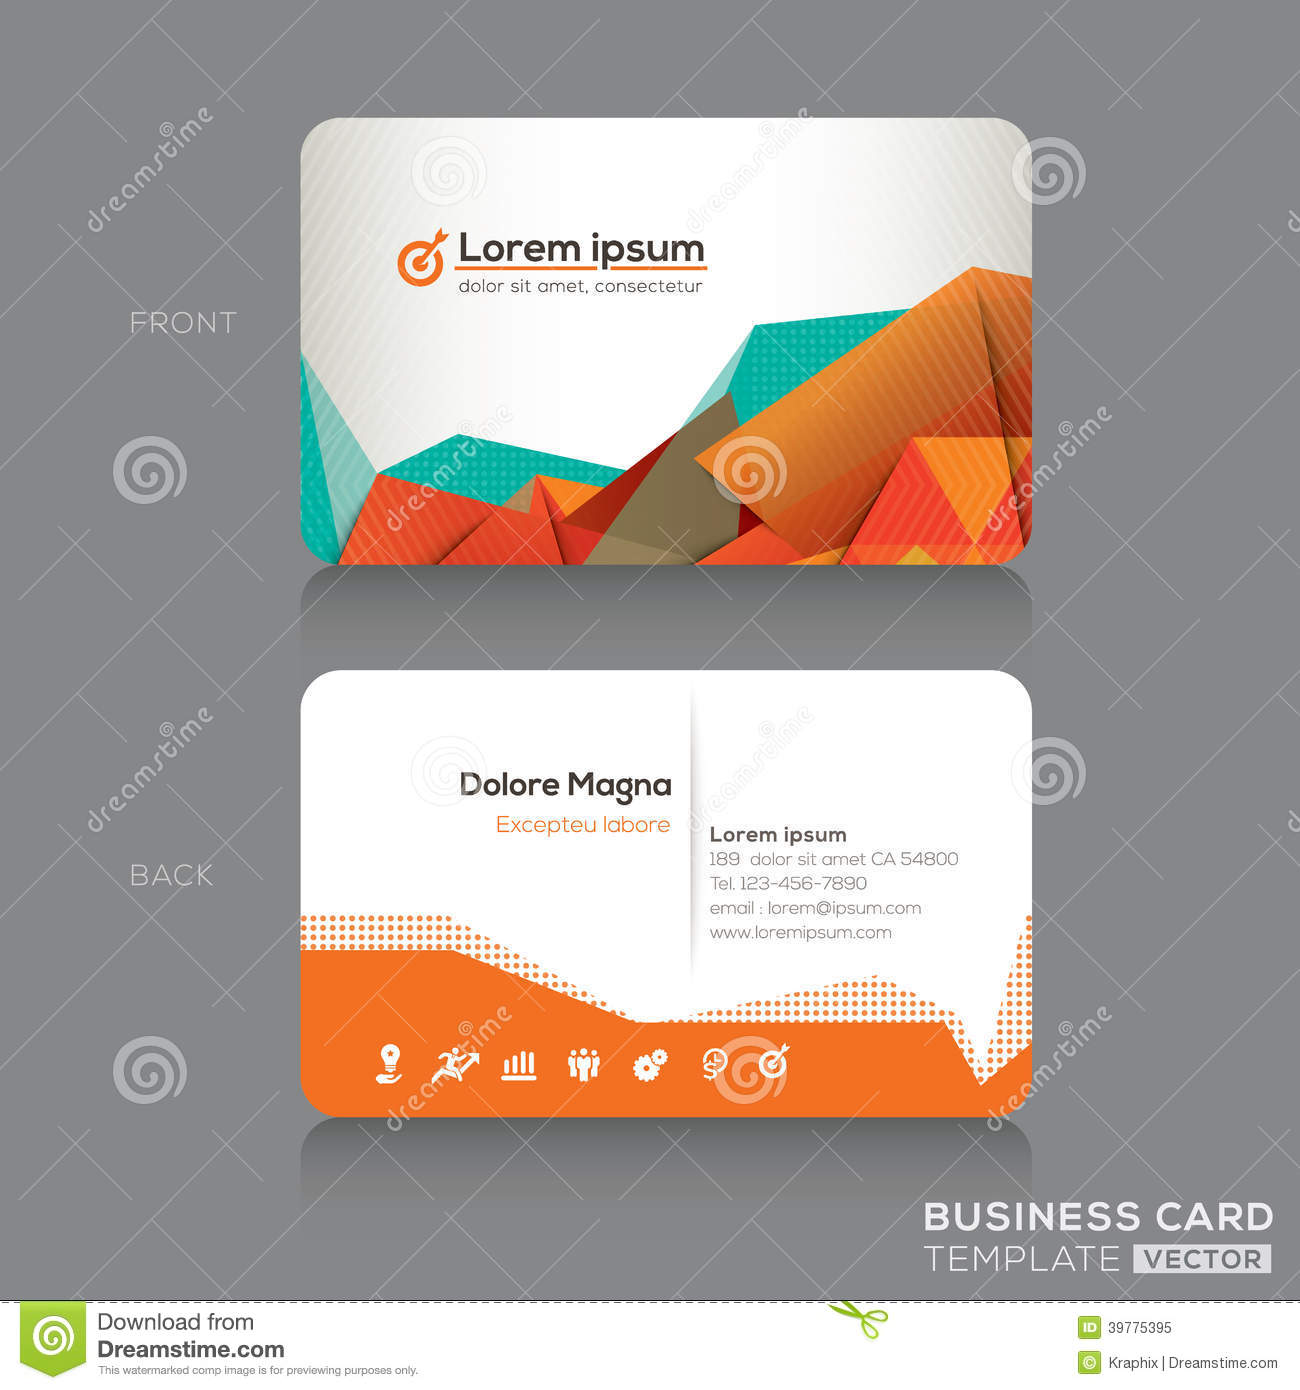 Modern Business Cards Design Template Stock Vector - Image ...